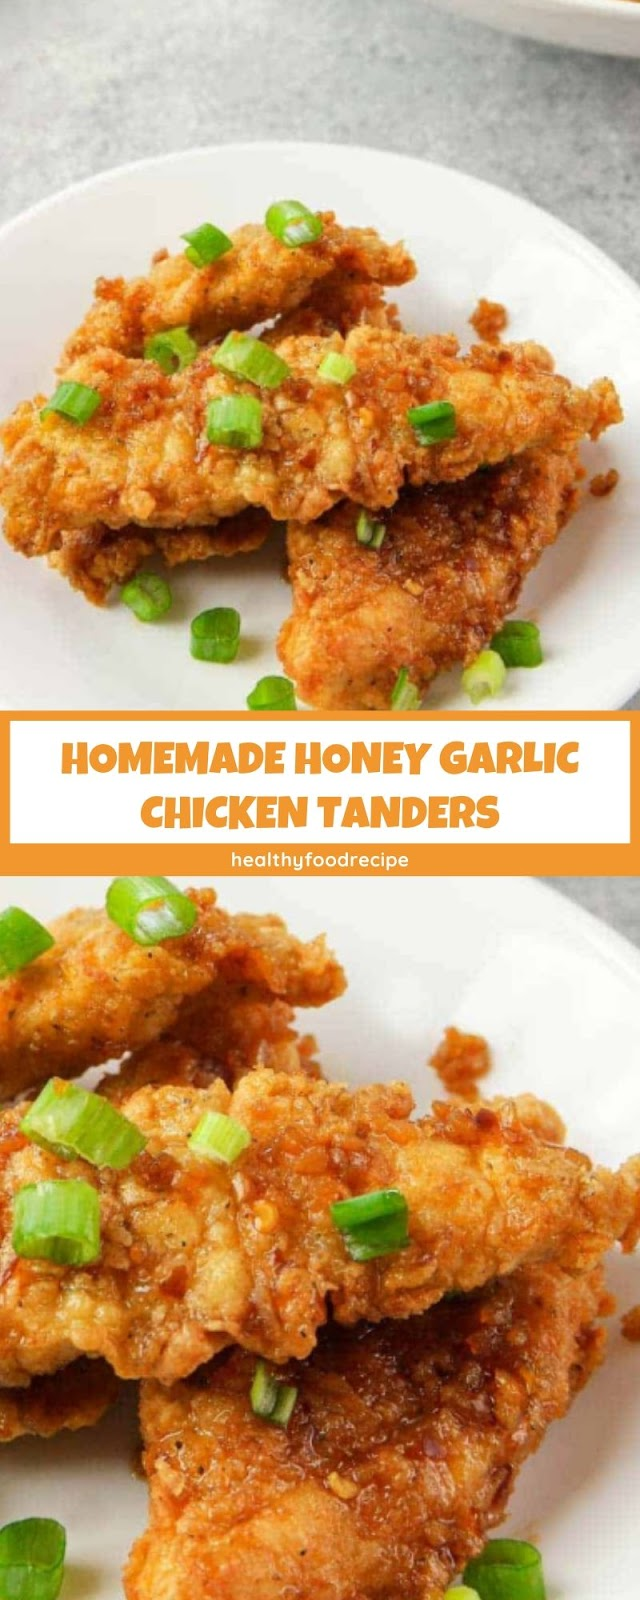 HOMEMADE HONEY GARLIC CHICKEN TANDERS